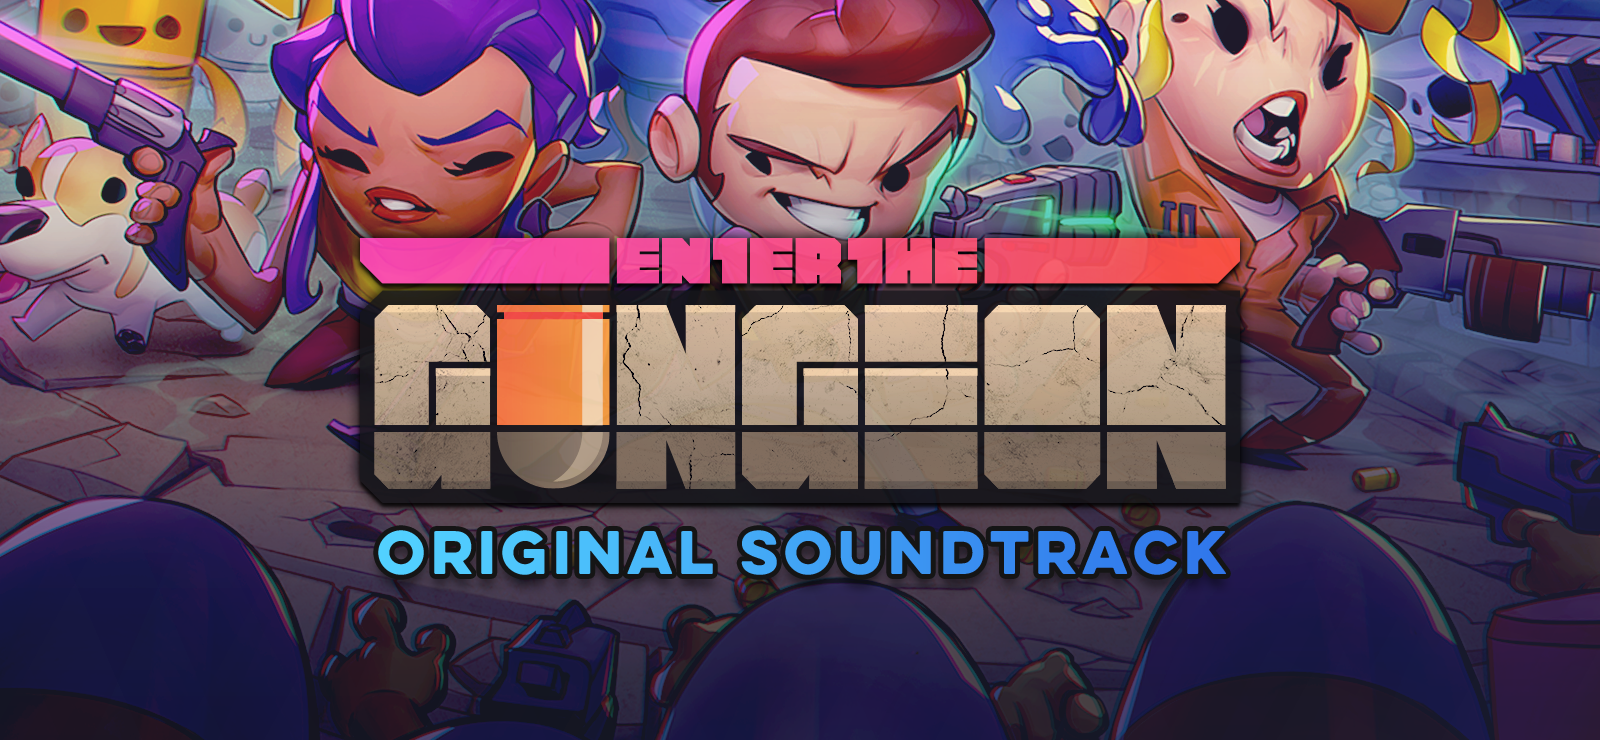 ENTER THE GUNGEON COLLECTOR'S EDITION UPGRADE